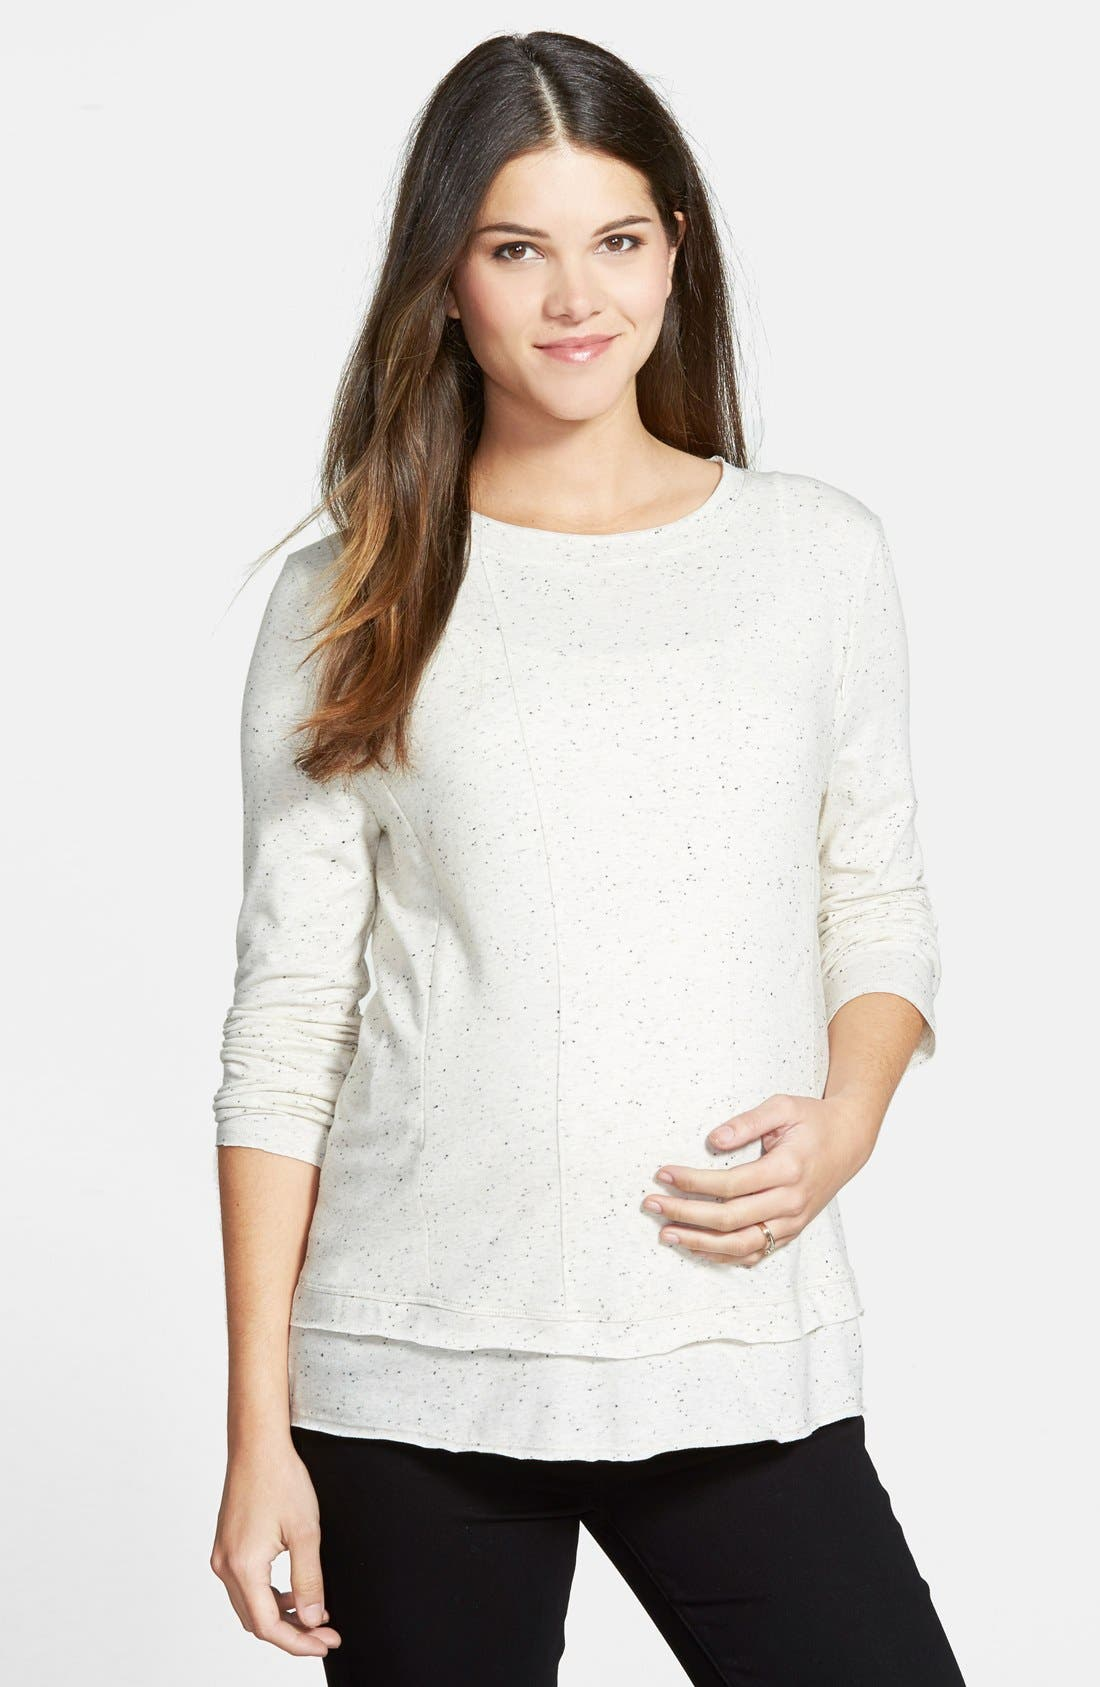 Loyal Hana 'Christy' Long Sleeve Maternity/Nursing Top